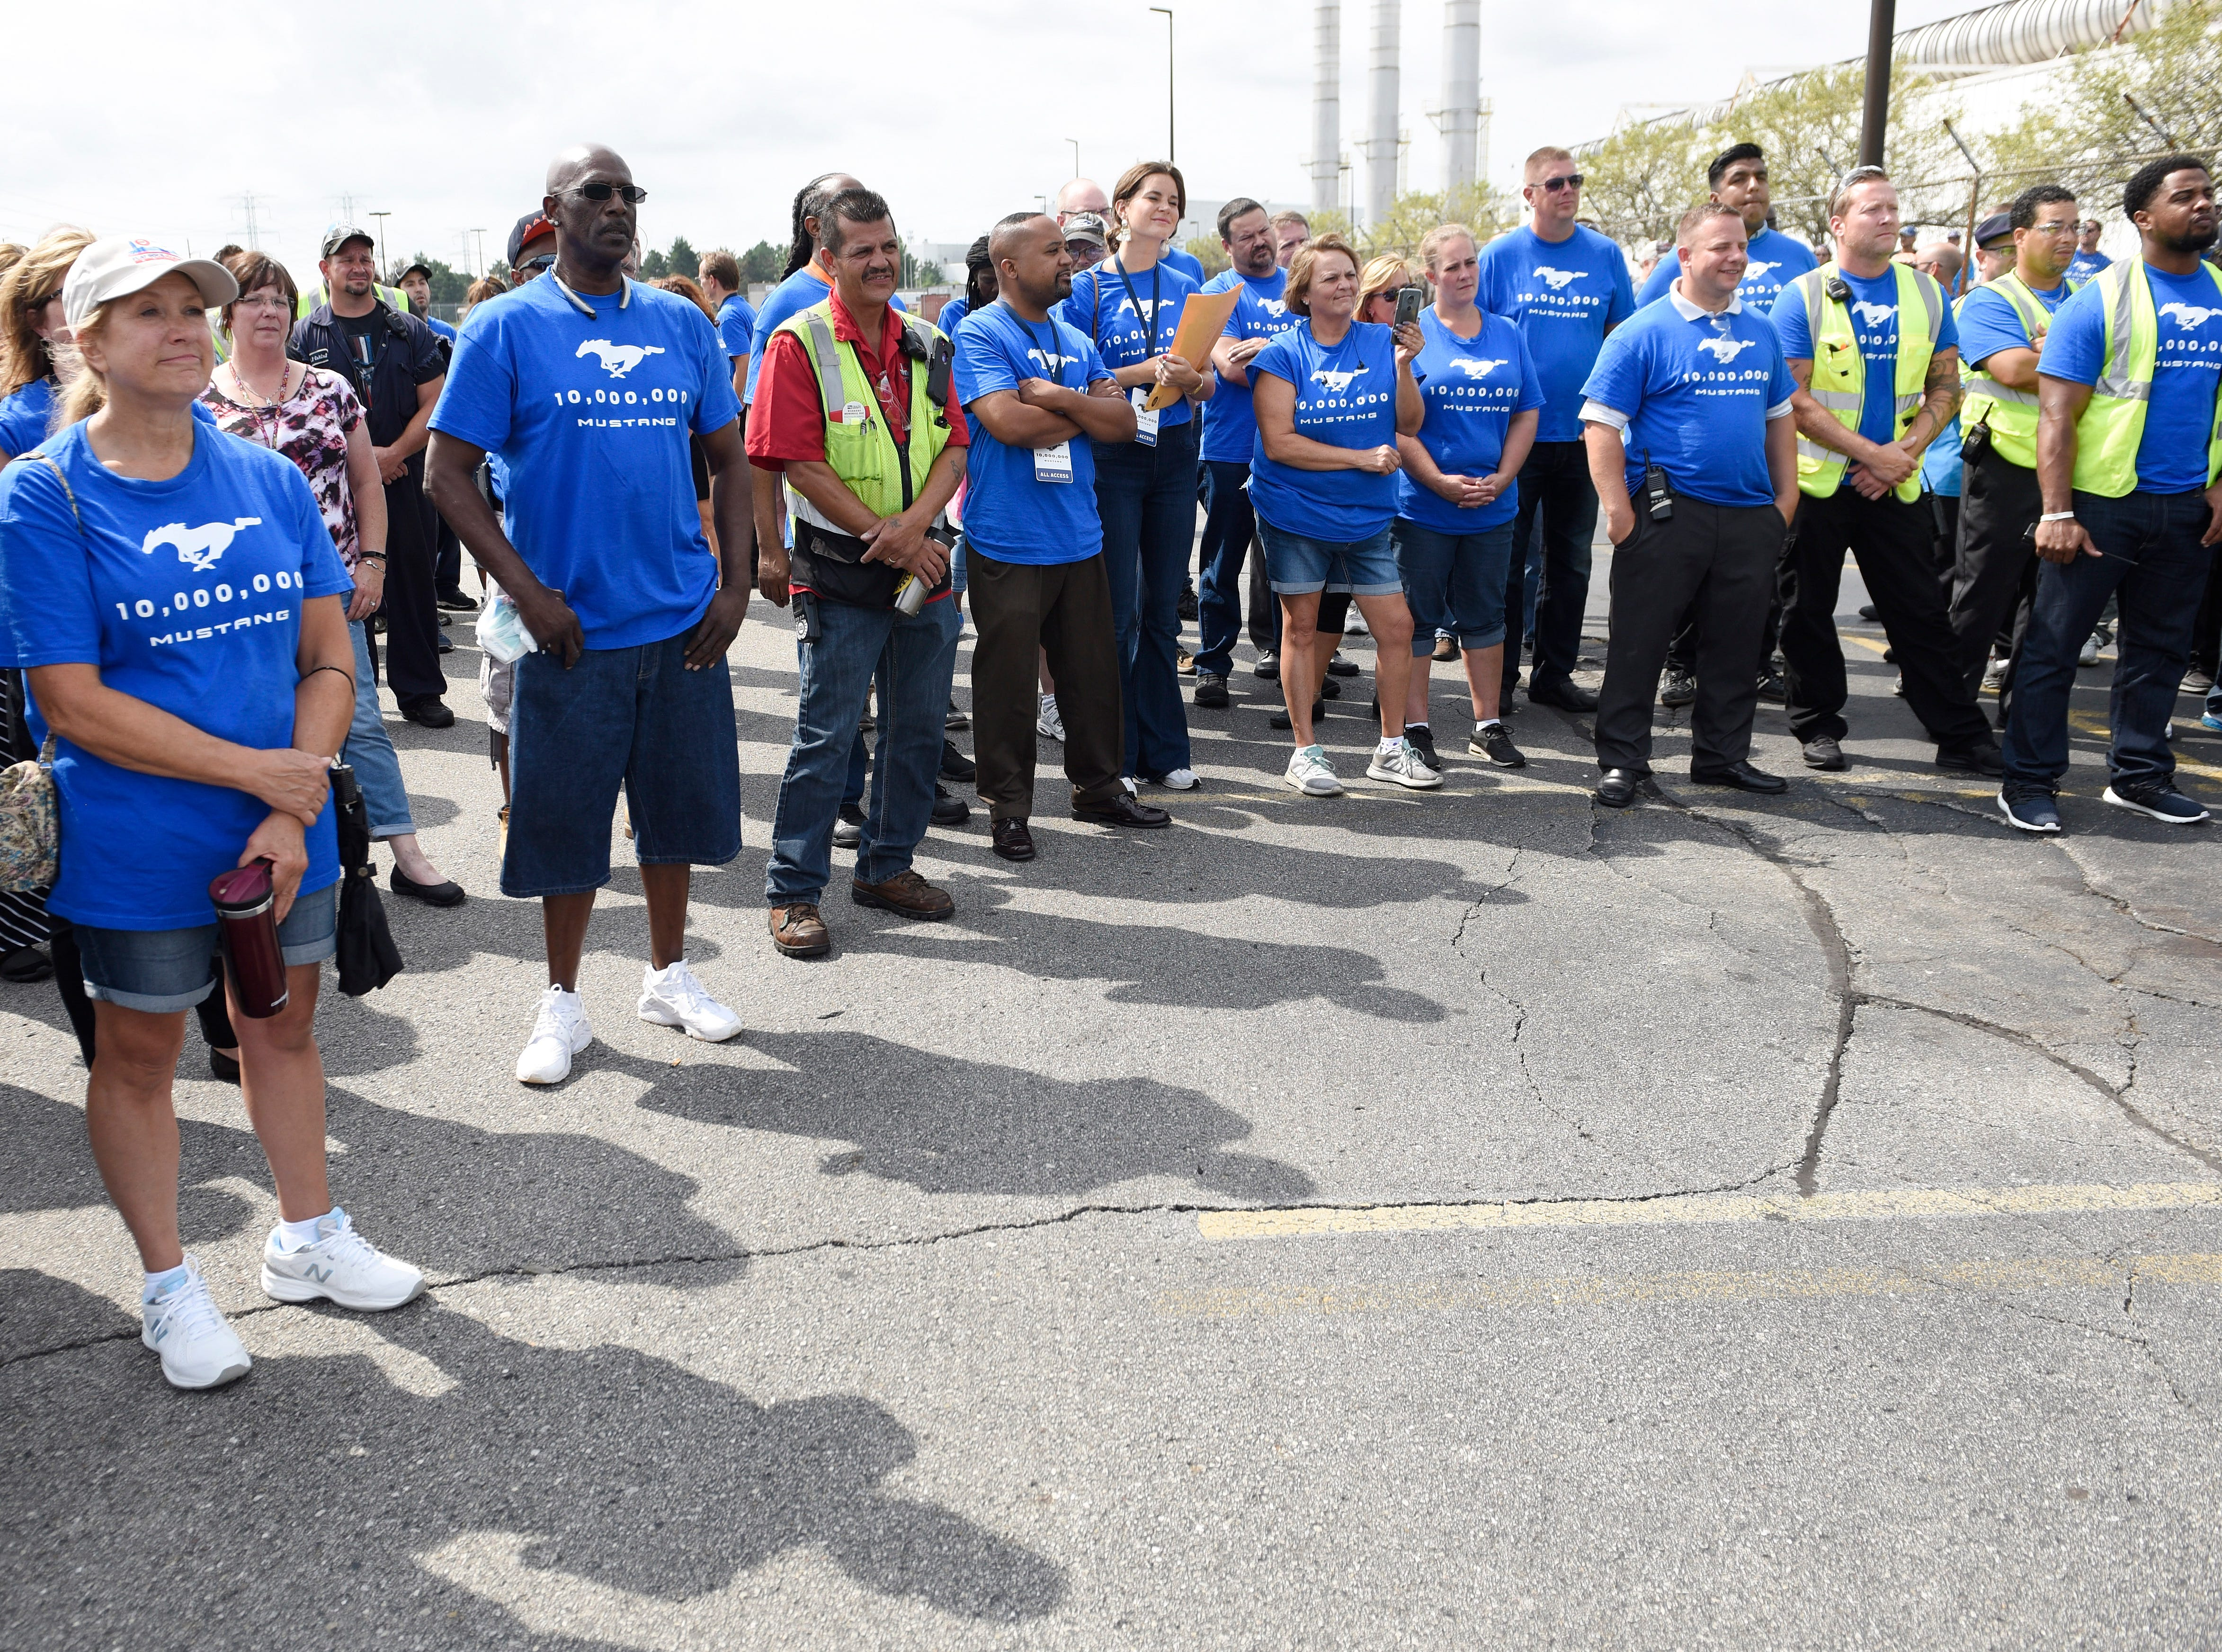 Plant employees came out for the event.